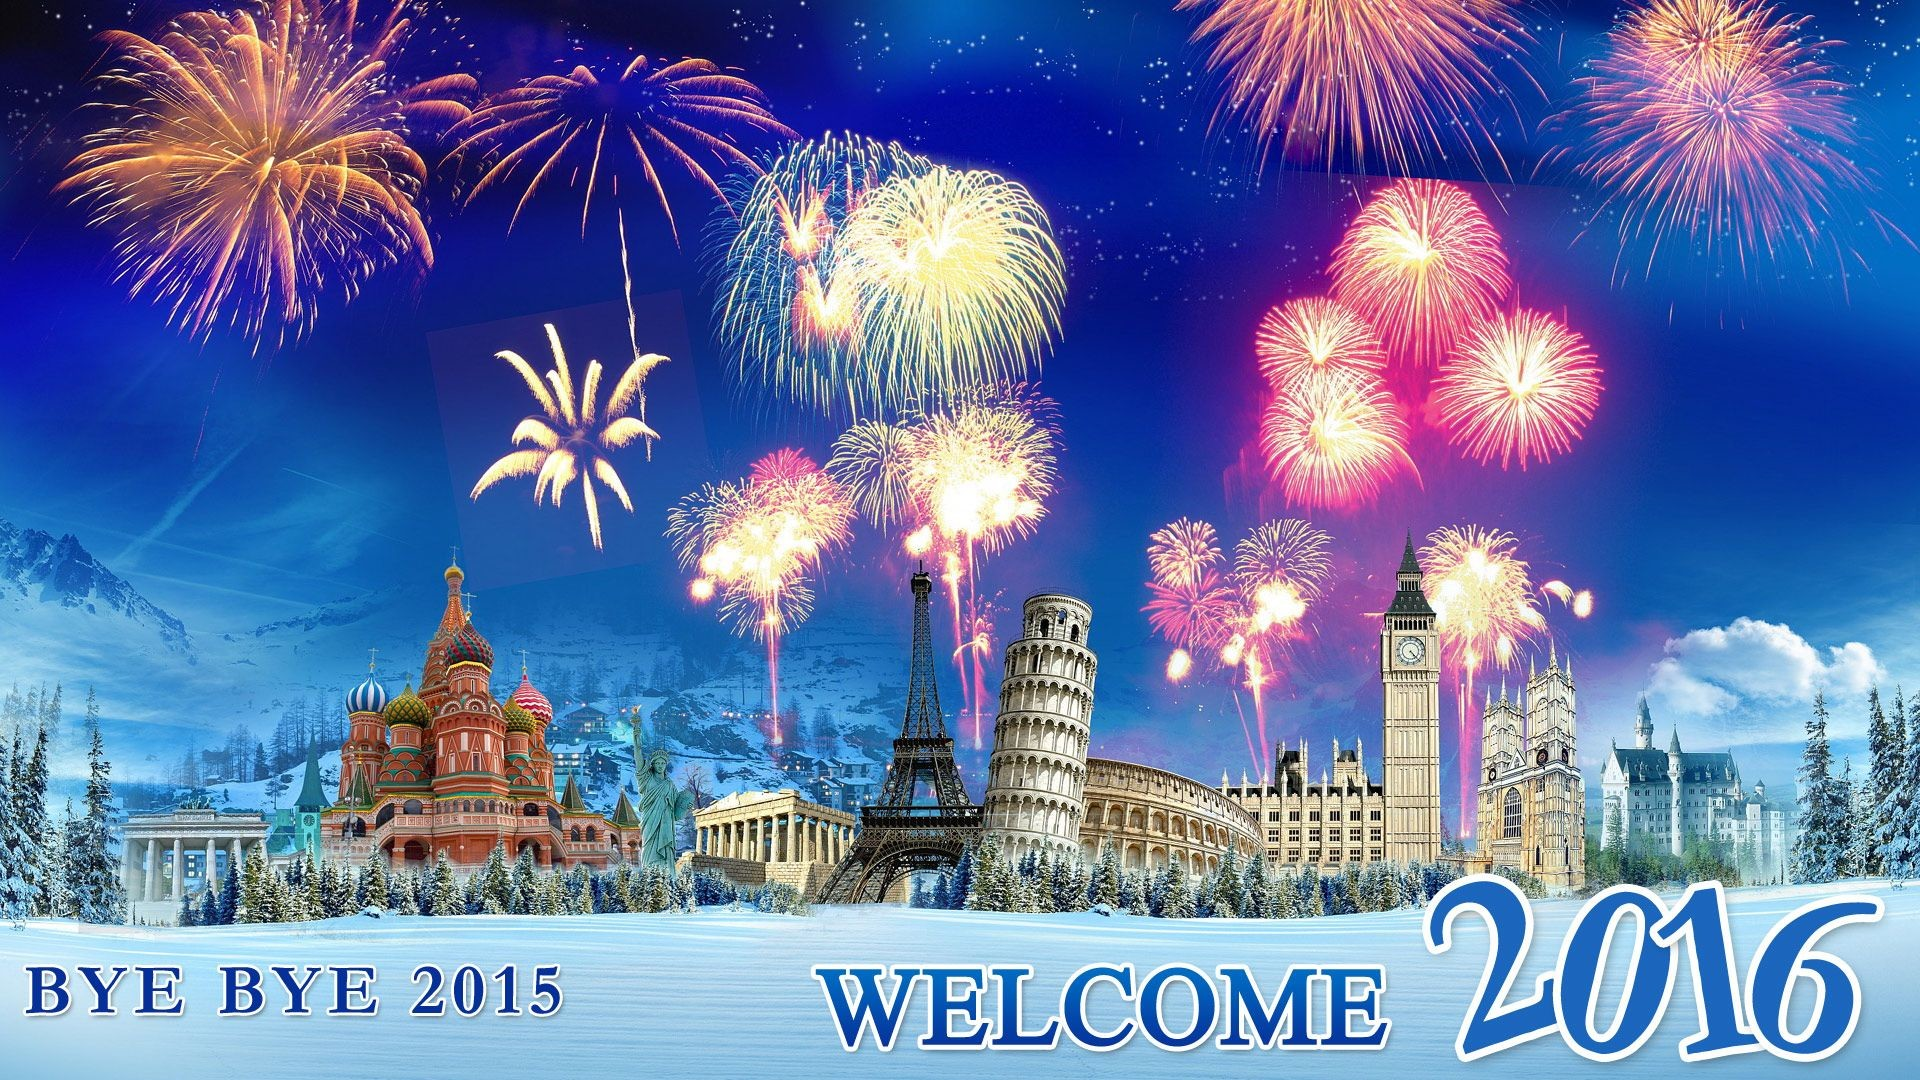 Bye bye 2015 welcome 2016 wallpaper – Free full hd wallpapers for .